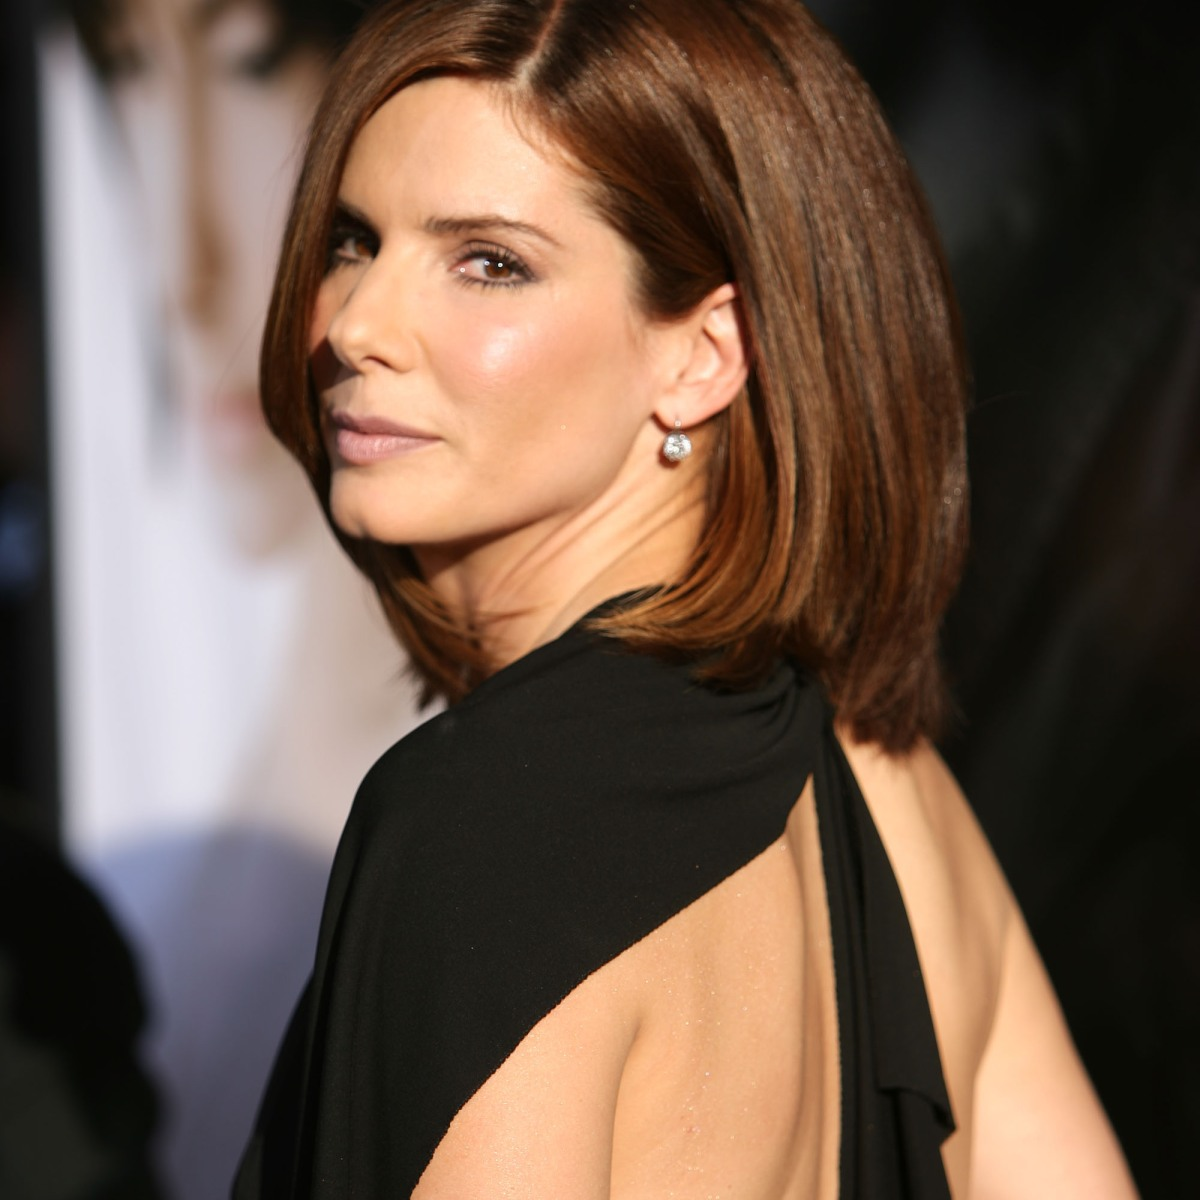 Sandra Bullock Then and Now: See the Actress' Transformation